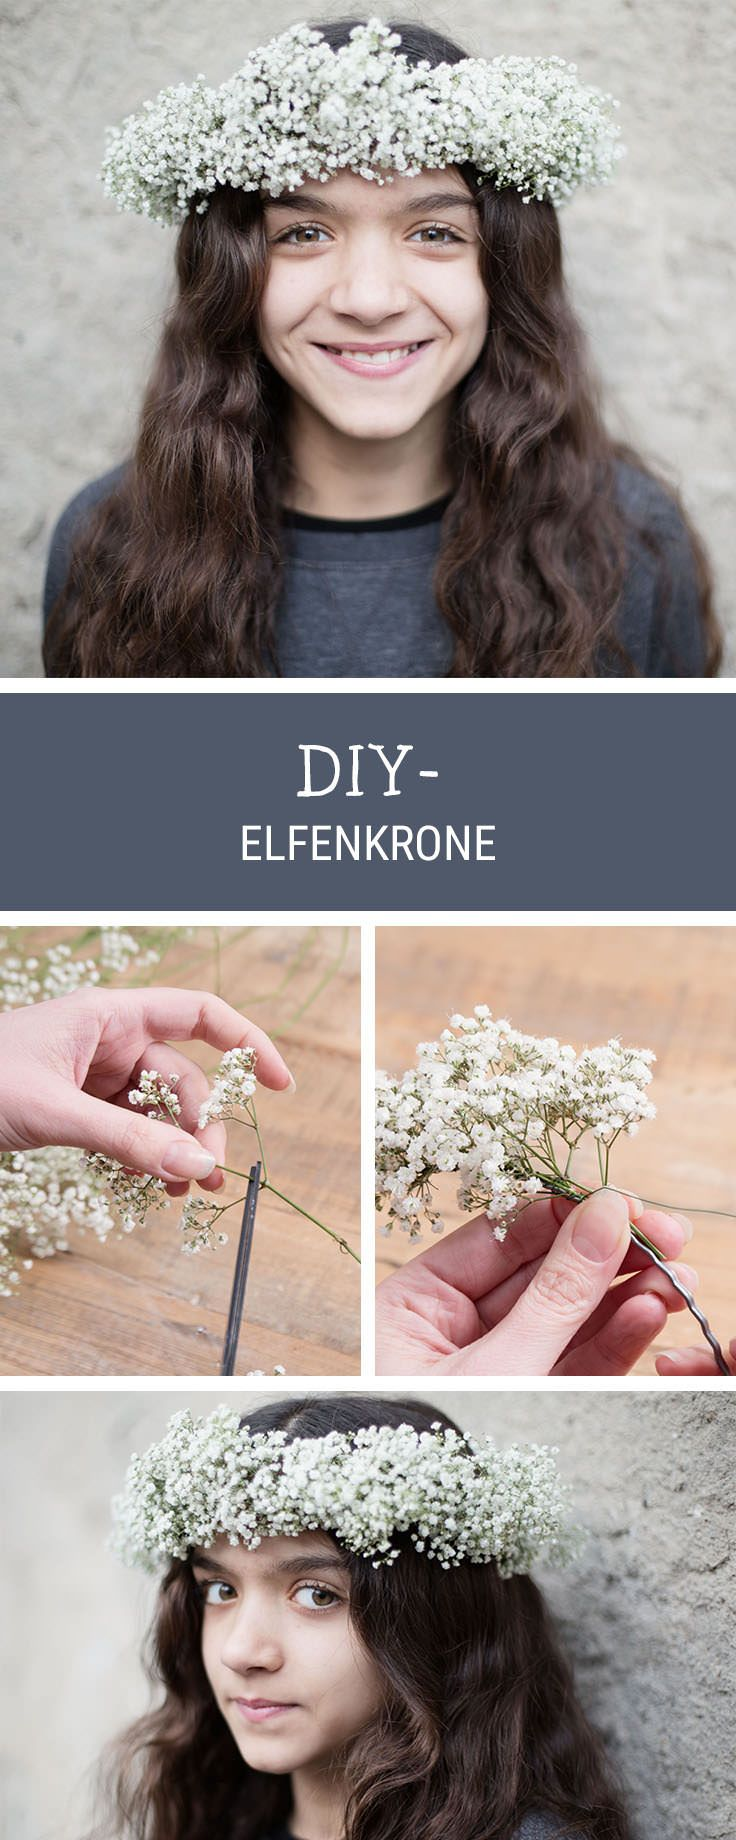 Inspiration für Haare: Blumenkranz flechten, Sommer-DIY / hair inspiration: how to make a floral wreath via DaWanda.com